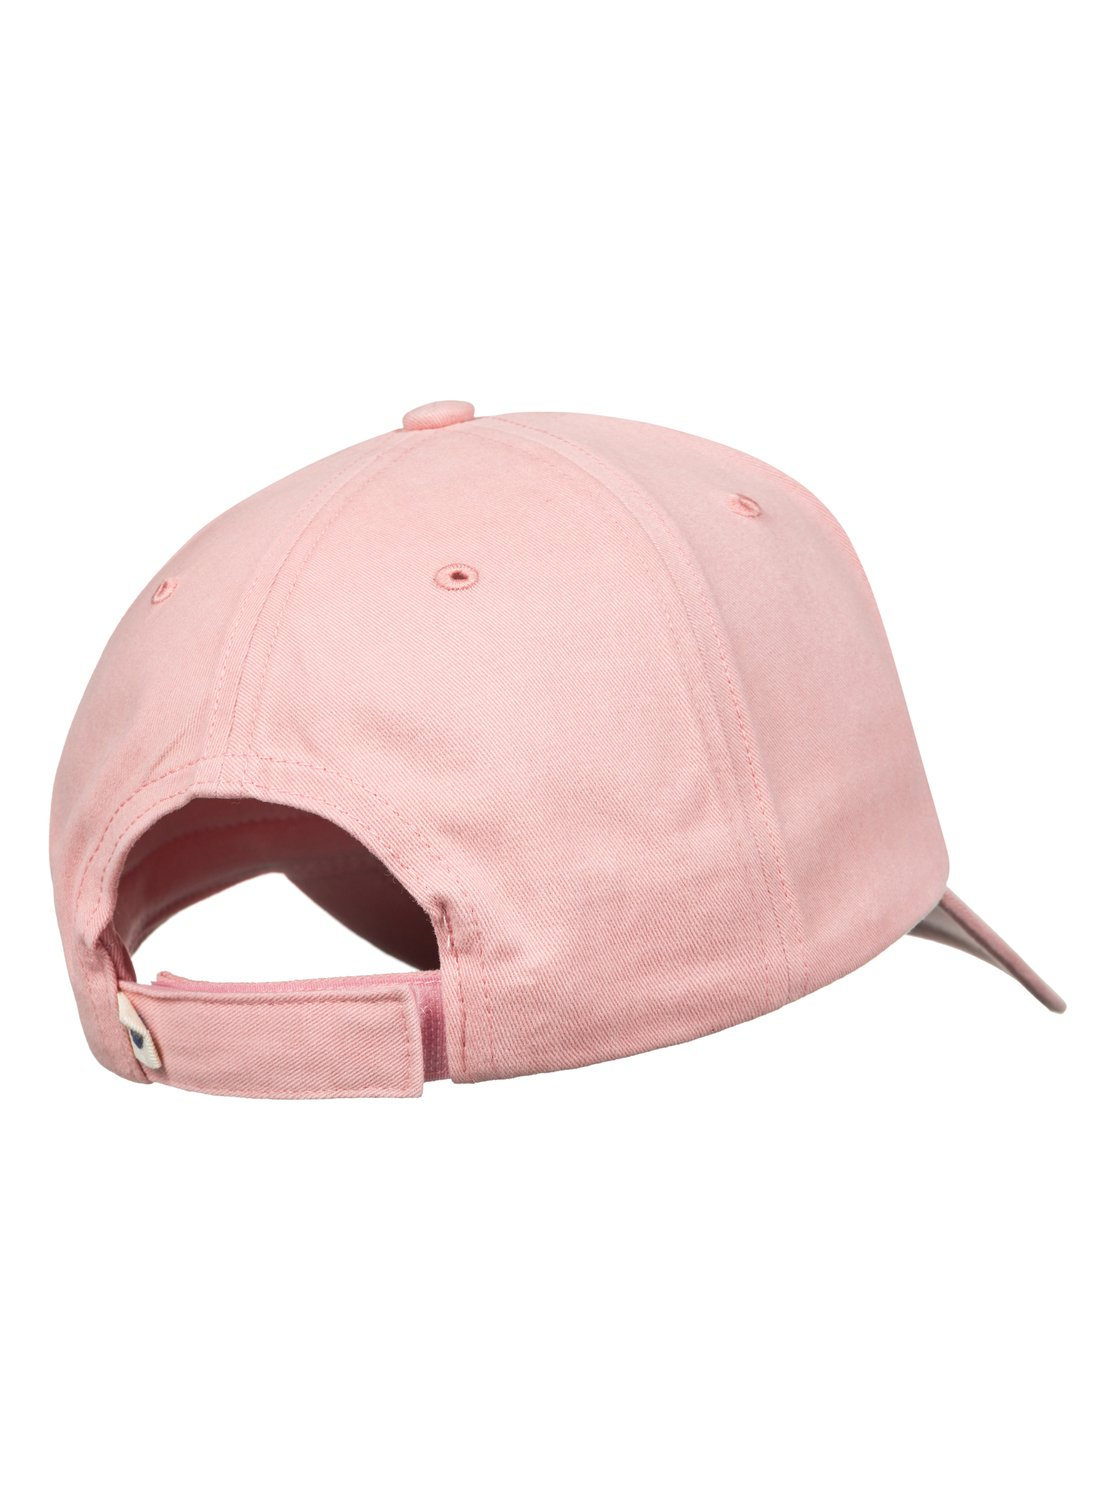 Mellow Rose New Roxy Extra Innings Women/'s Hat